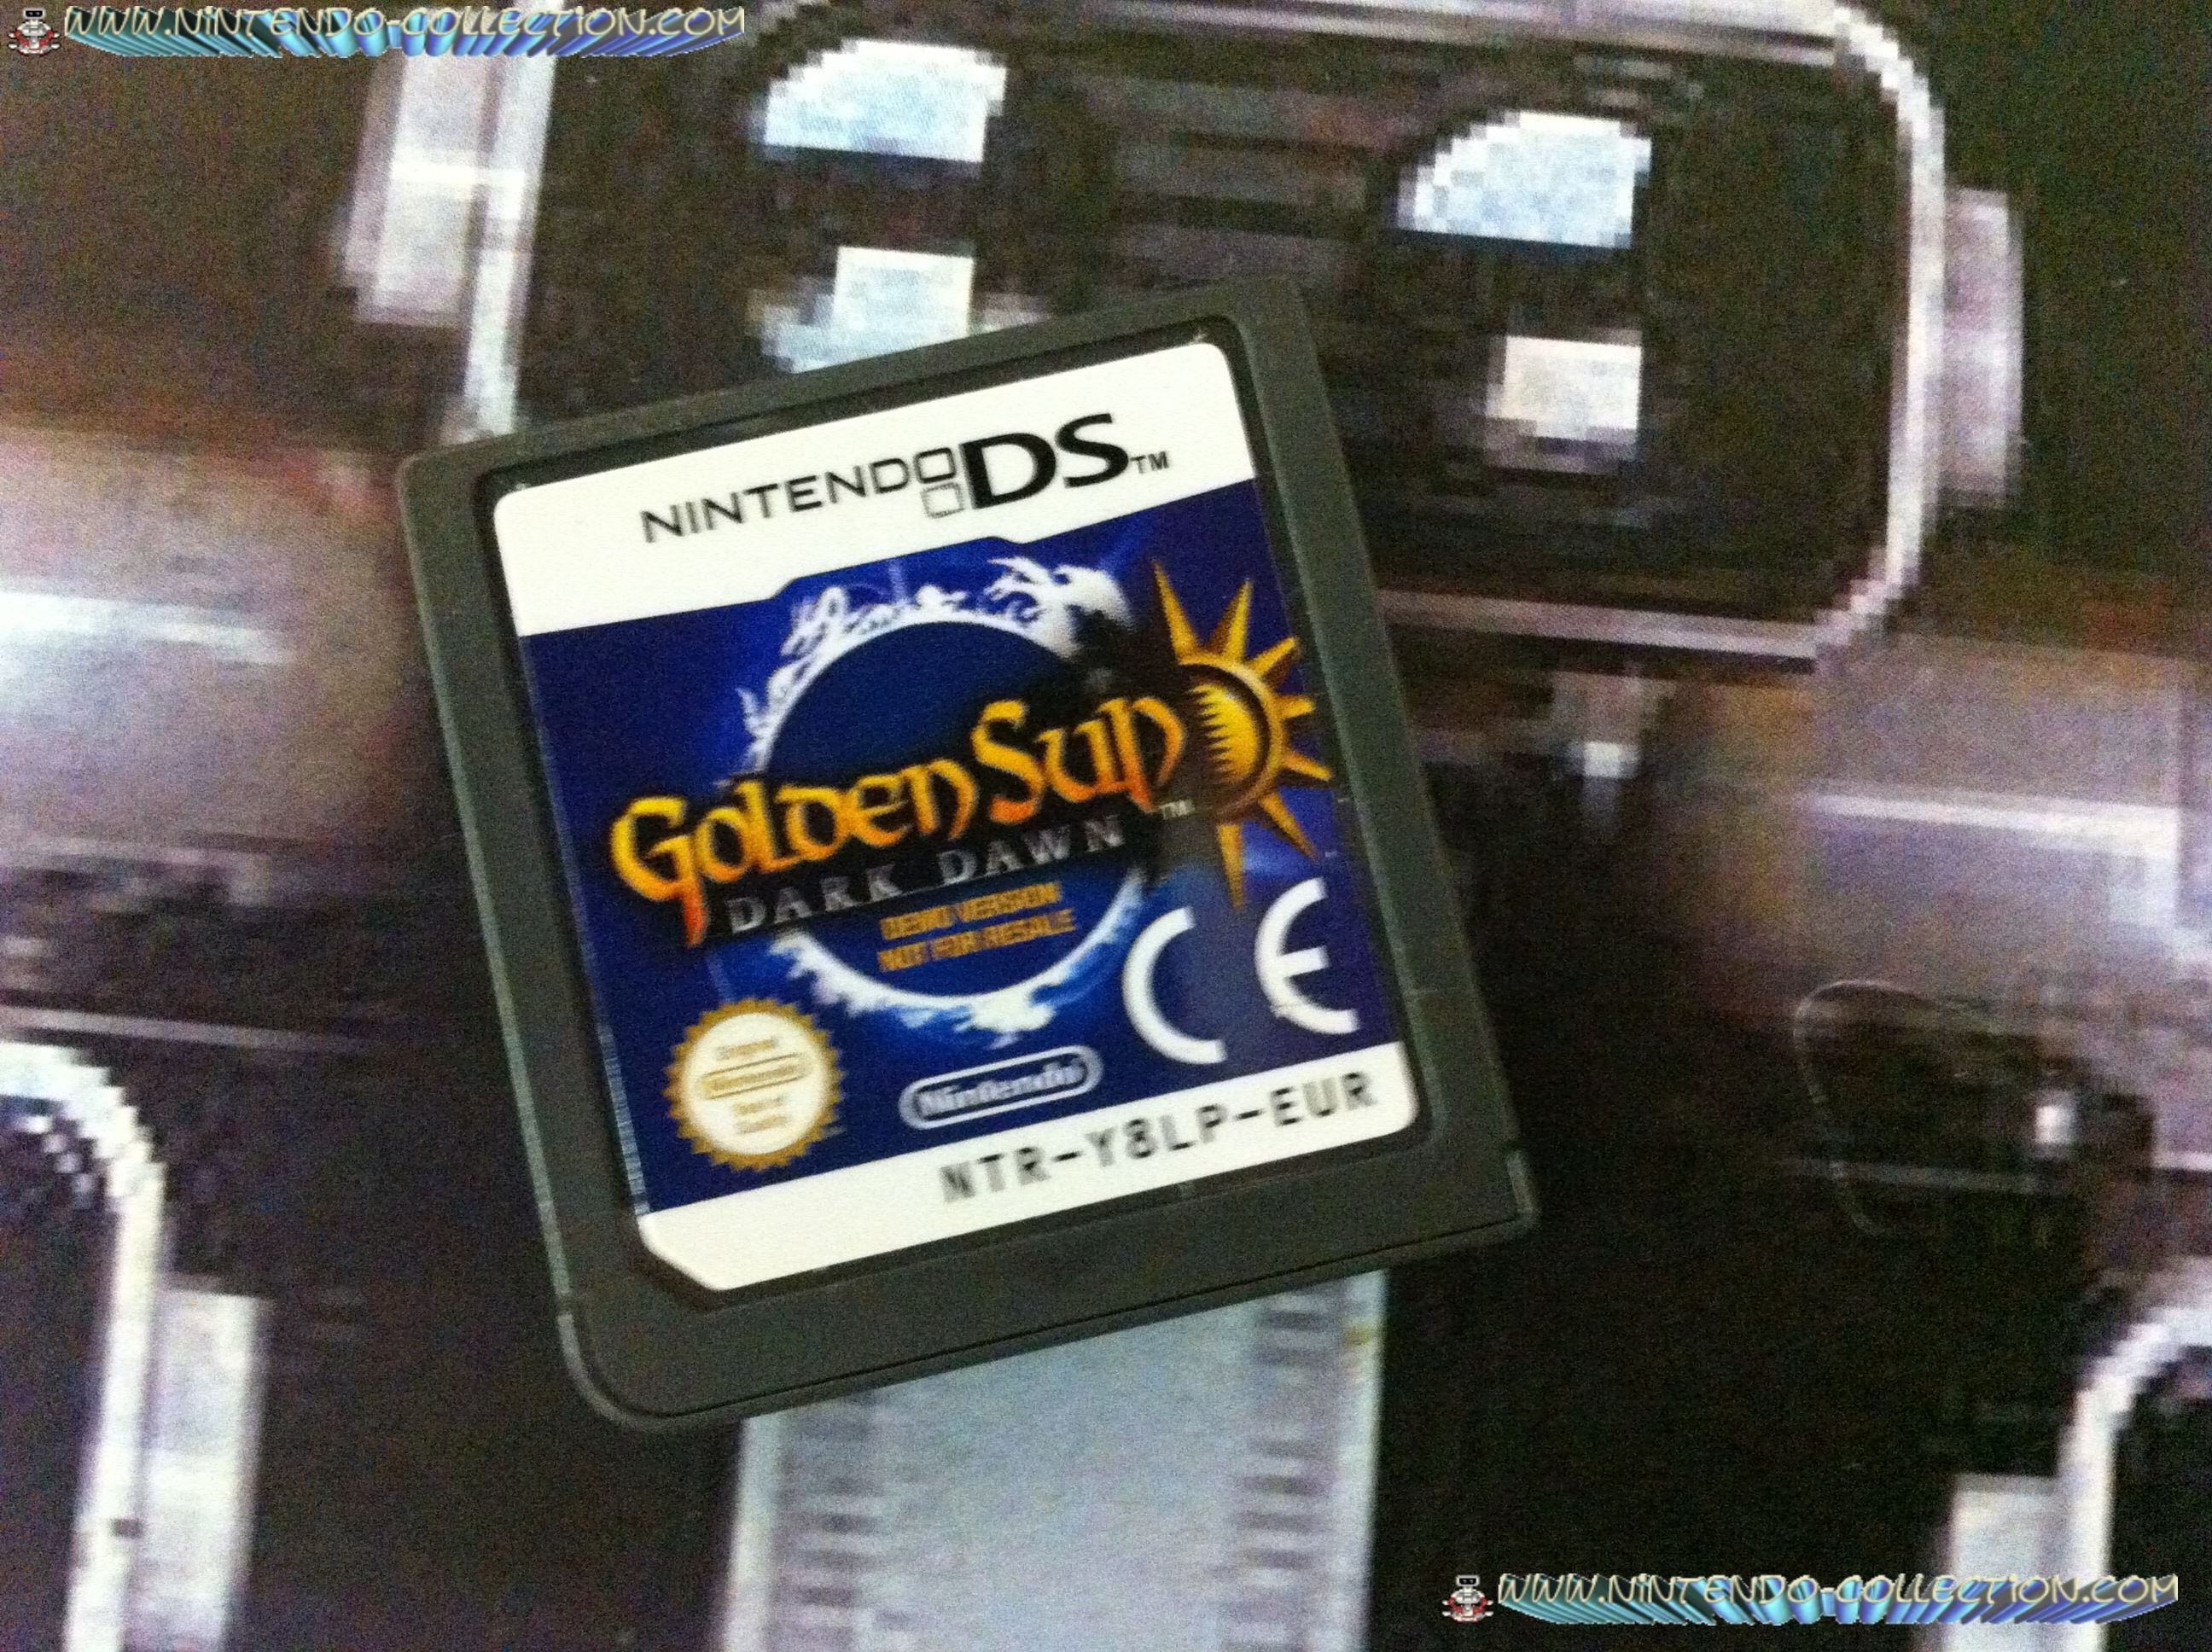 www.nintendo-collection.com - Demo DS 3 DS - Not For Resale - Golden Sun Dark Dawn